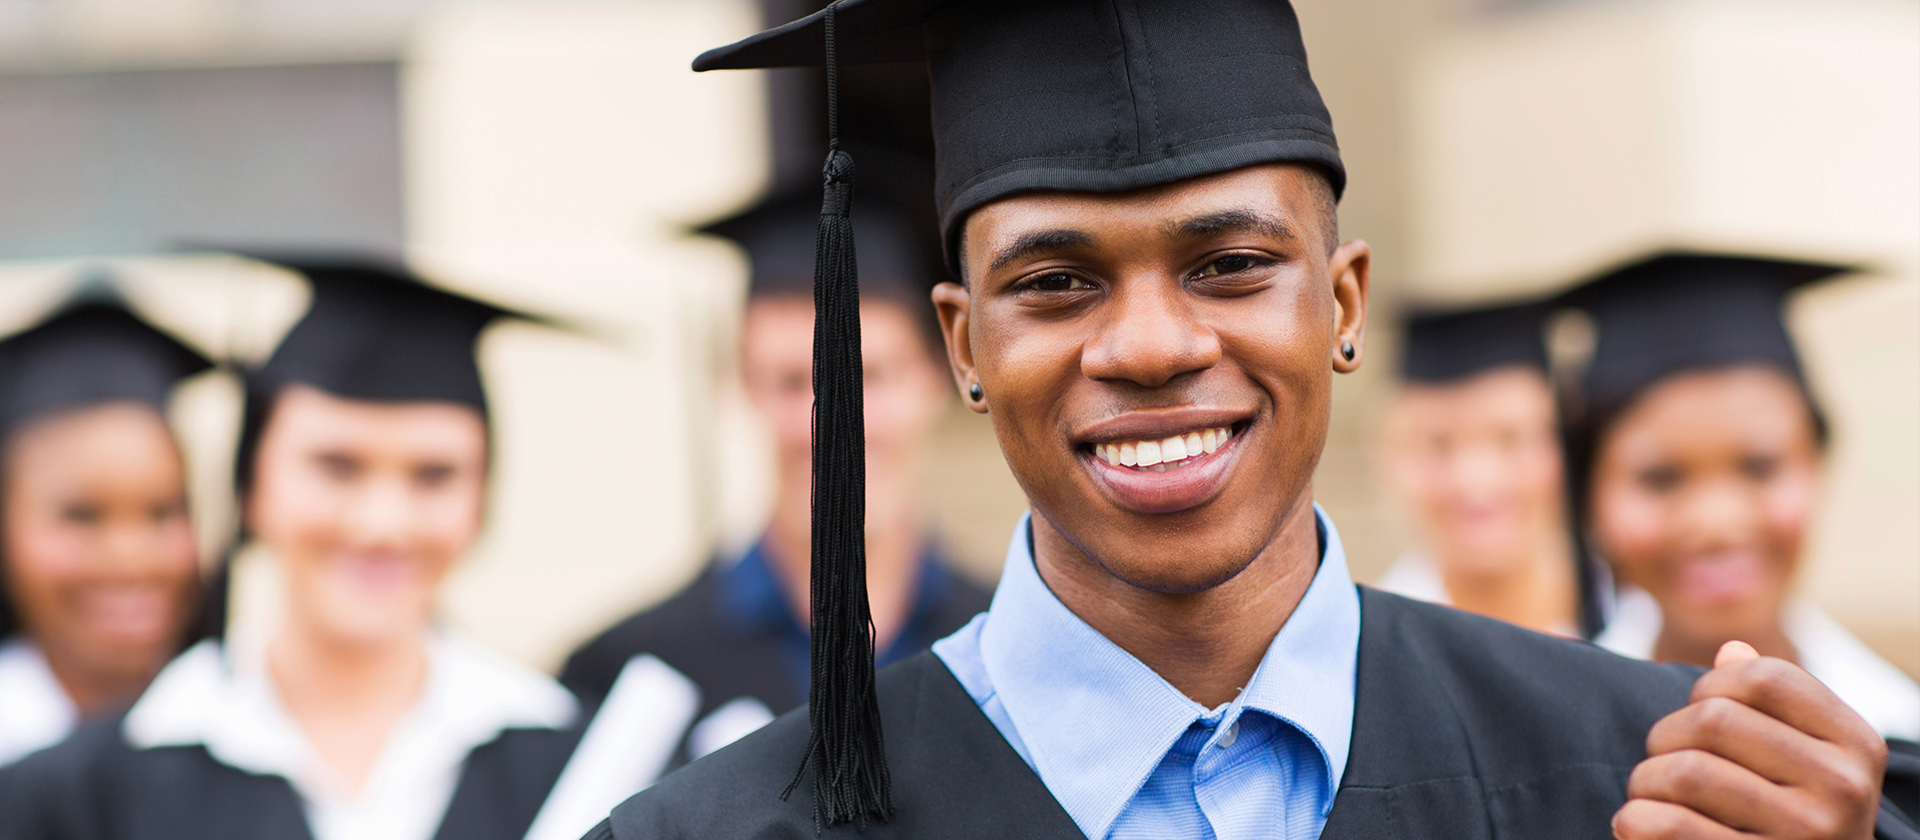 Image of young man in Graduation Cap and Gown